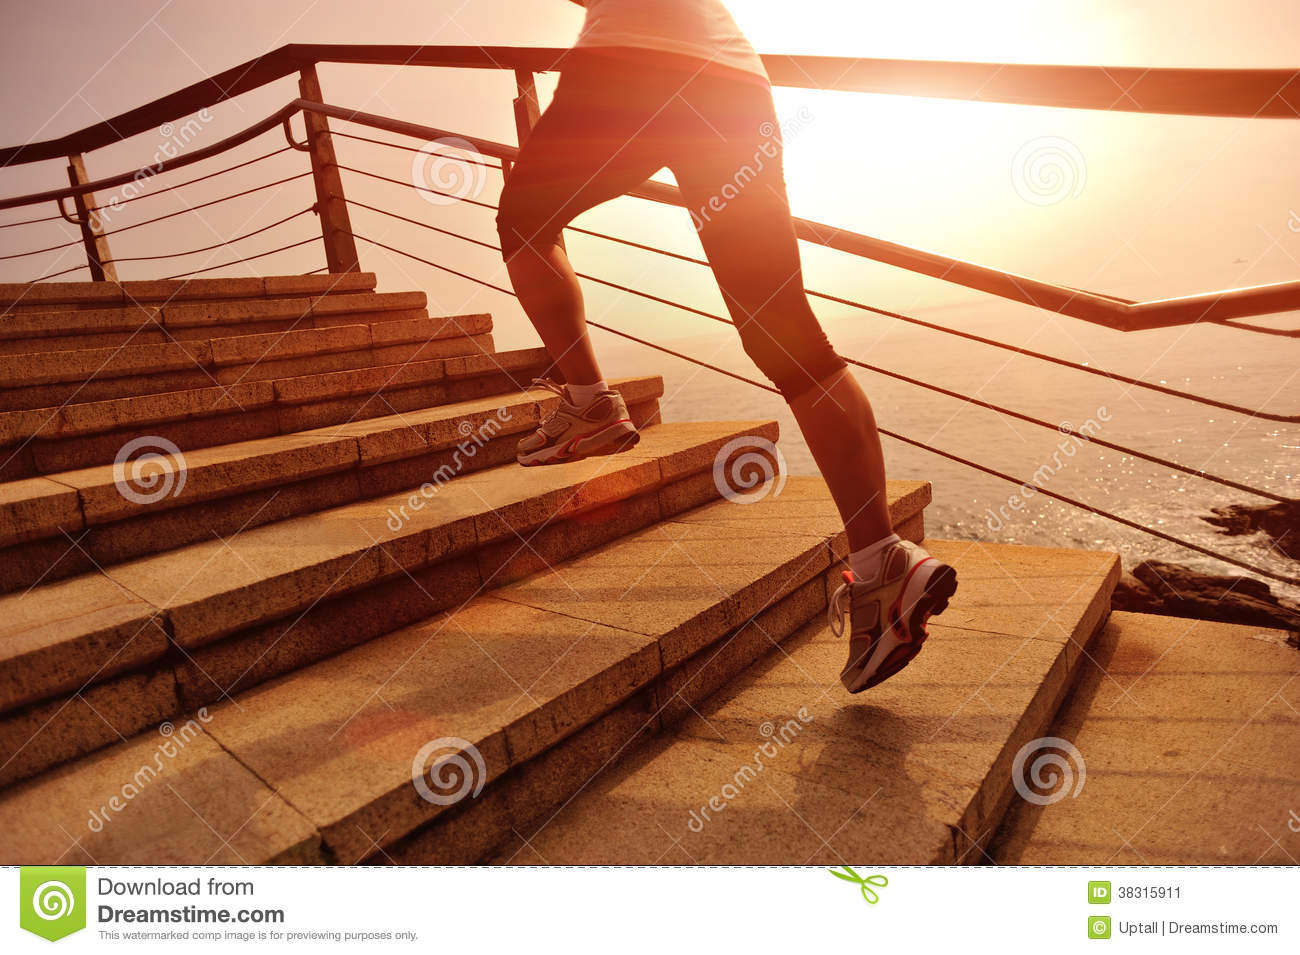 Healthy lifestyle woman legs running on stone stairs